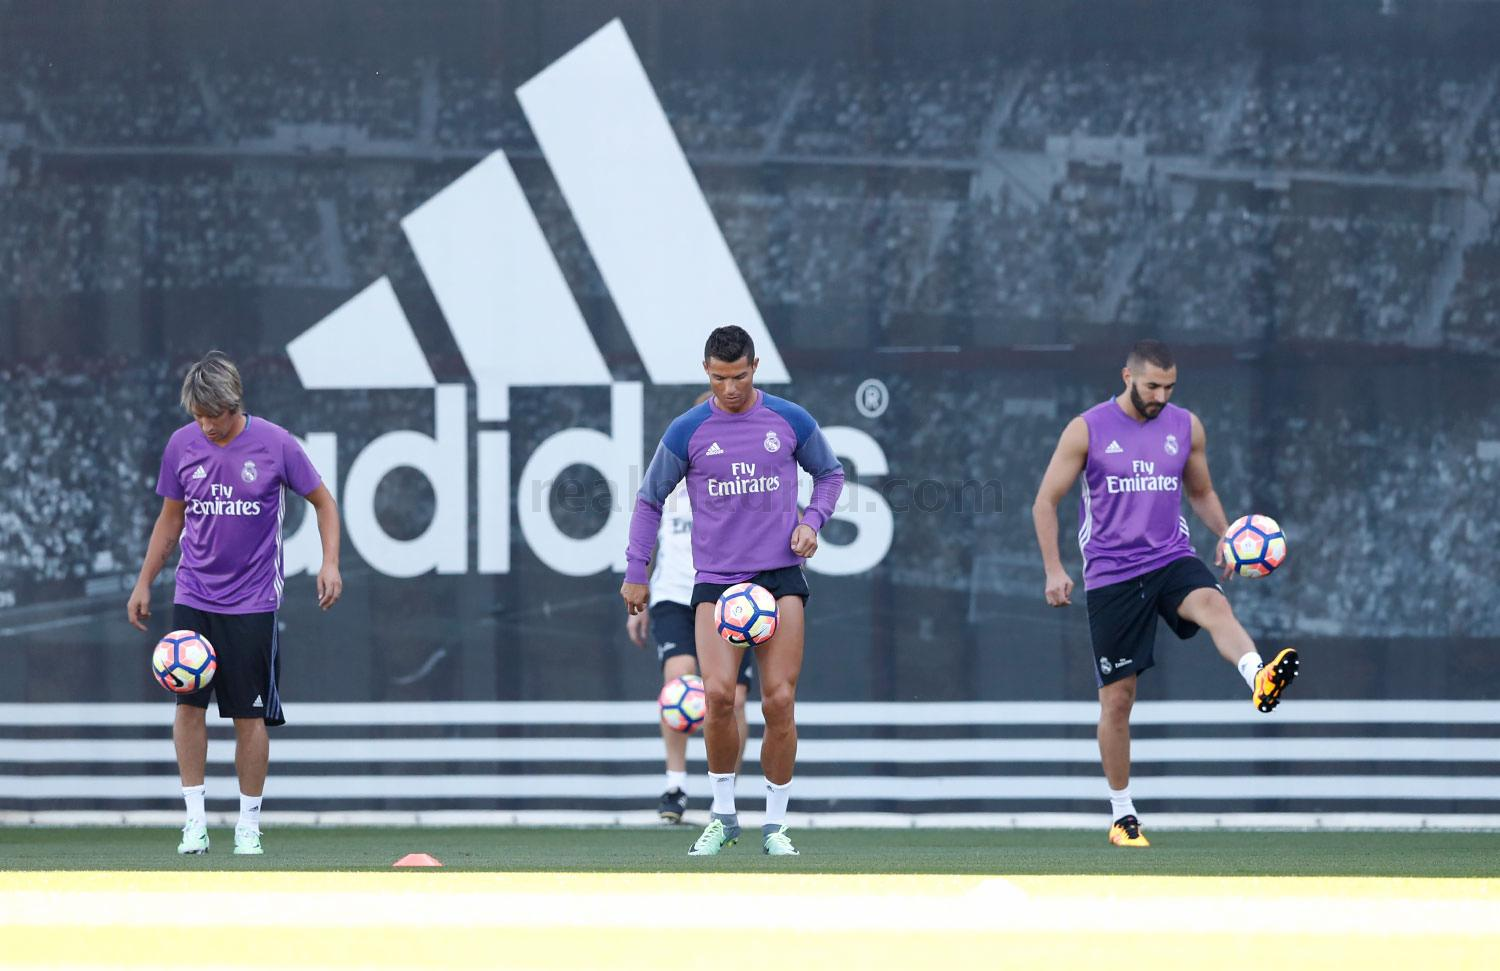 Real Madrid - Entrenamiento del Real Madrid - 23-08-2016